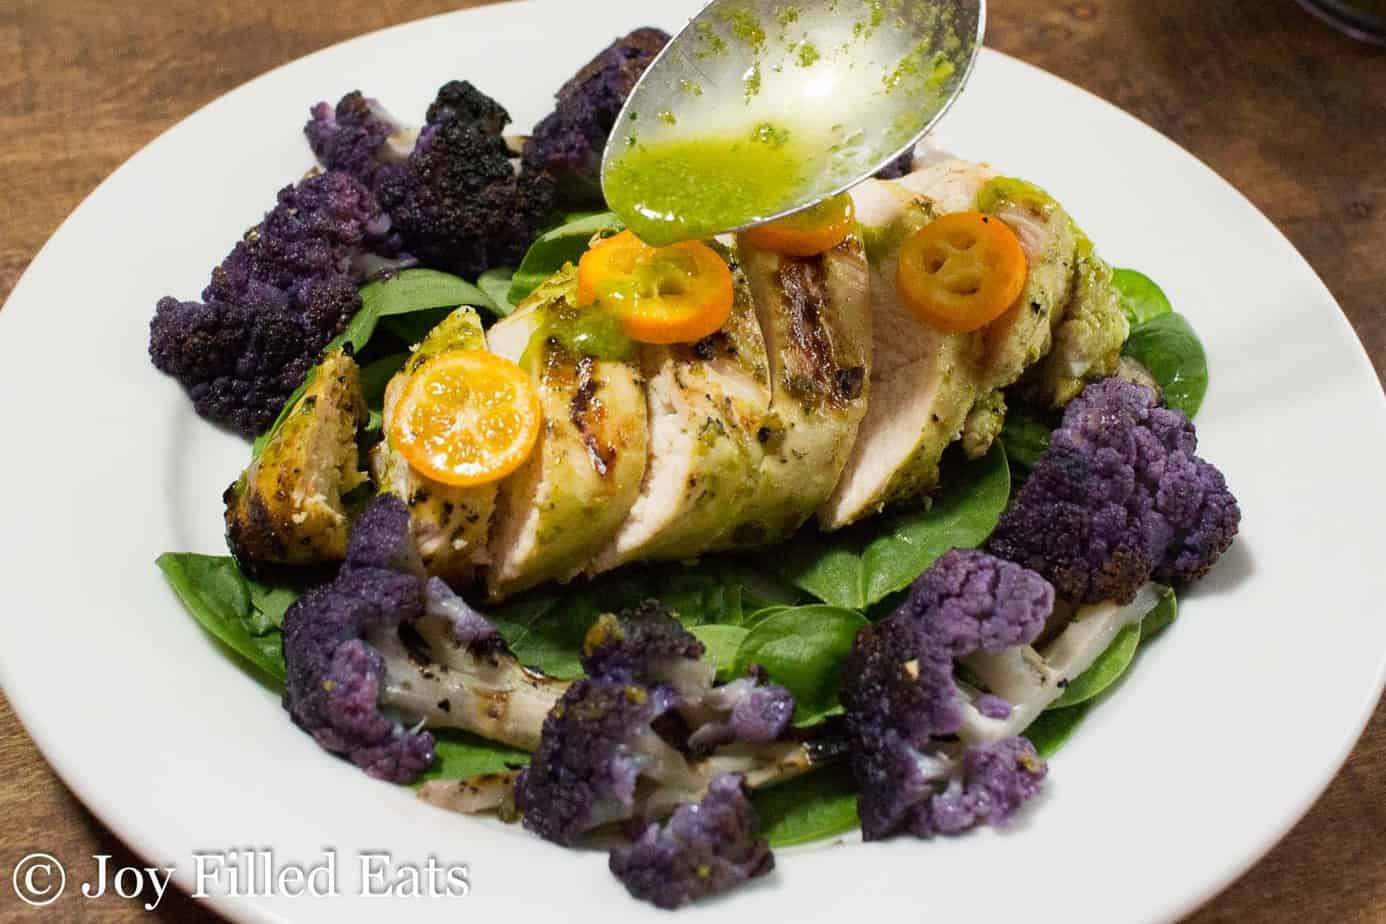 spoon pouring citrus basil dressing onto grilled chicken atop of a bed of spinach surrounded by purple cauliflower